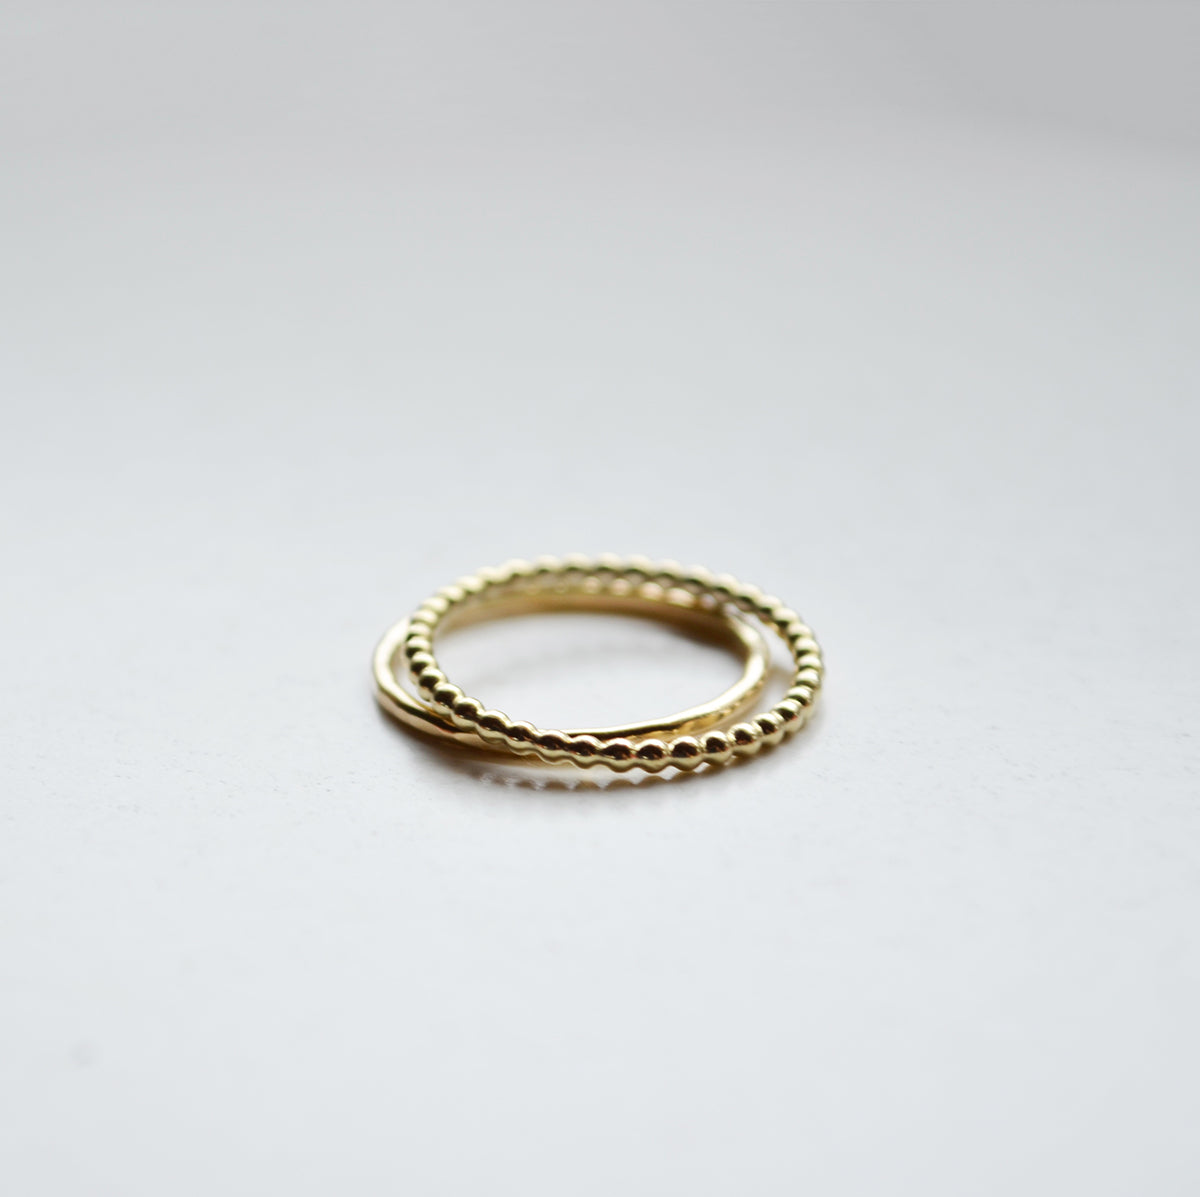 Hammered ring - 14K GOLD